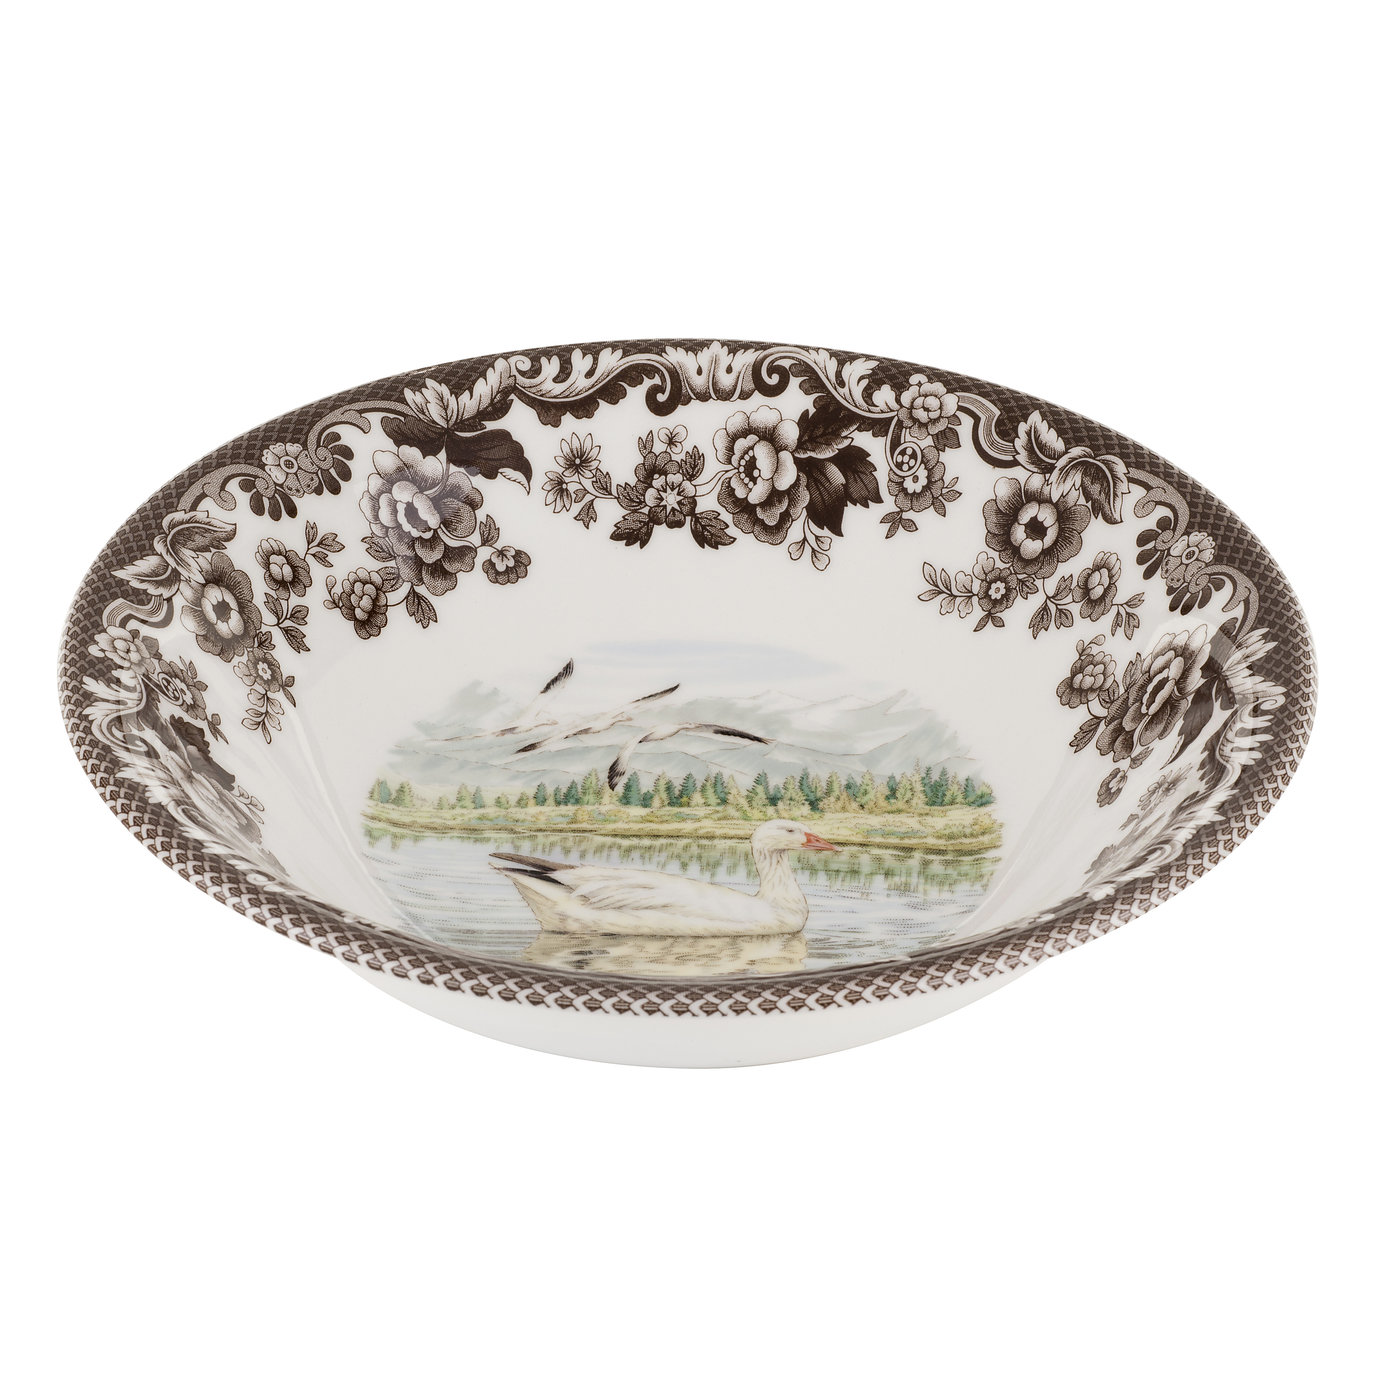 Spode Woodland Ascot Cereal Bowl 8 Inch (Snow Goose) image number 0